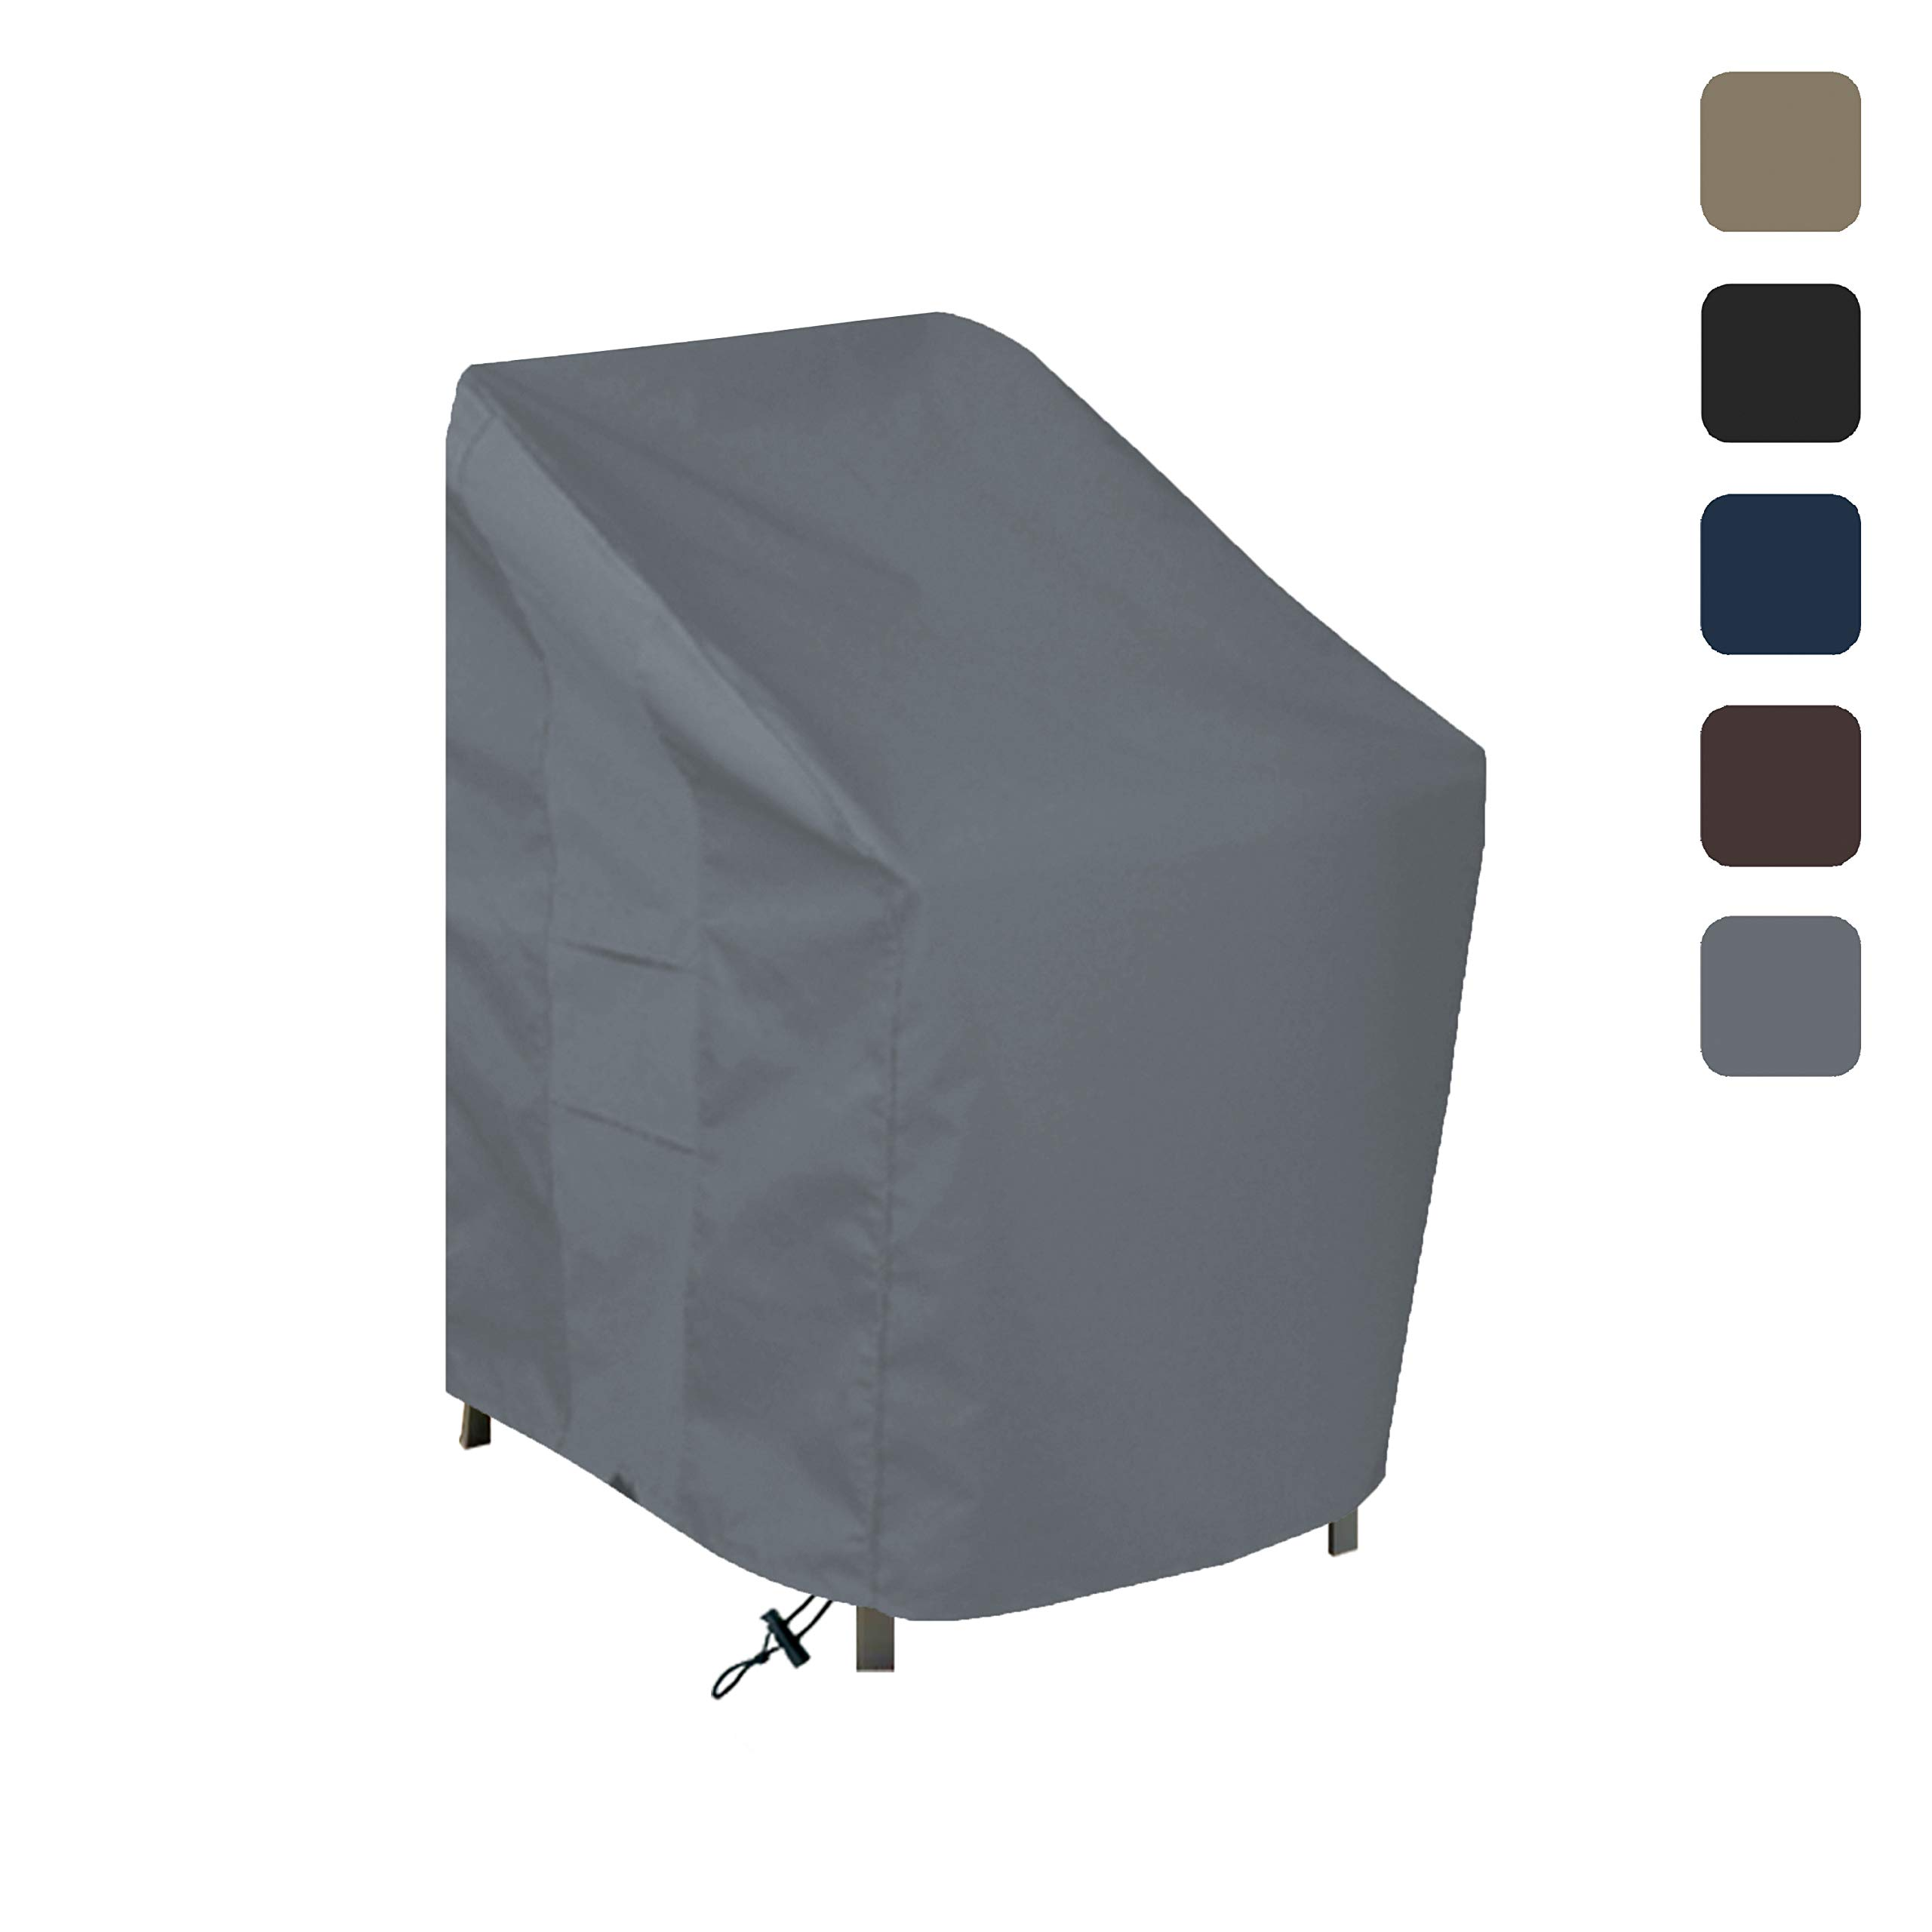 Outdoor Chair Cover 12 Oz Waterproof - 100% UV & Weather Resistant - Customize Cover - Stackable/Patio Chair Covers with Air Pockets and Drawstring for Sung fit (28W x 30D x 49H, Grey)